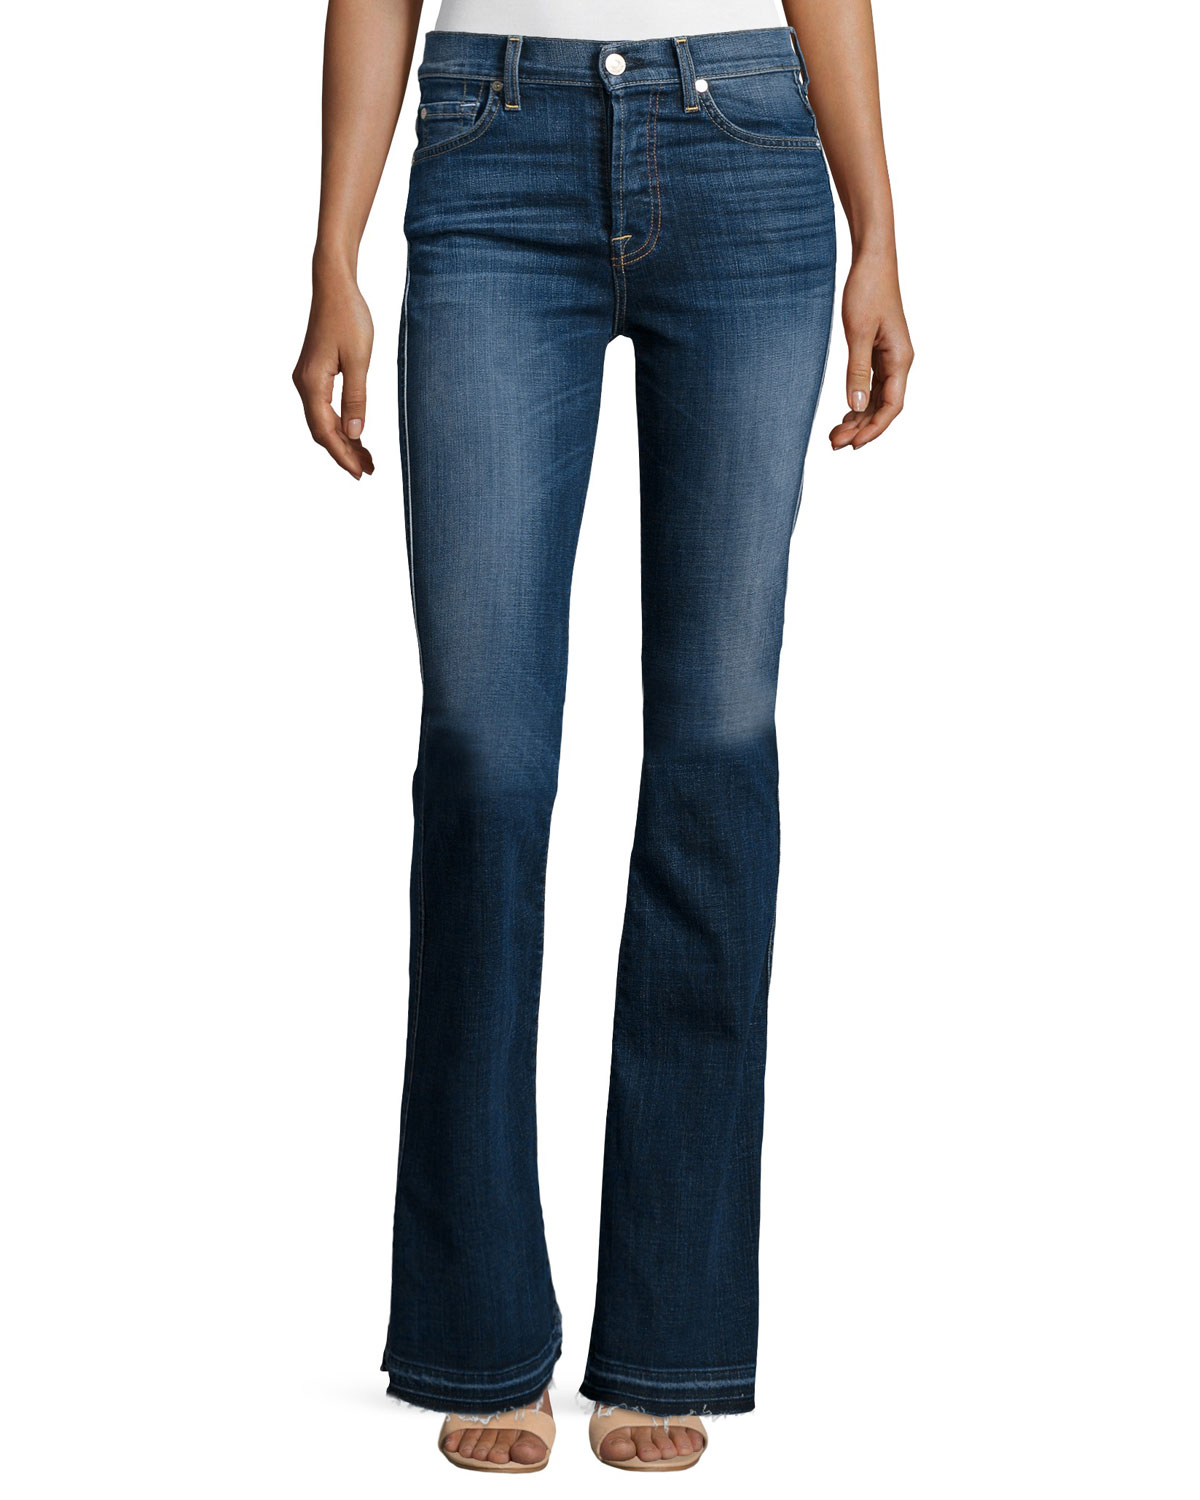 High-Waist Vintage Boot-Cut Jeans, La Palma Blue, Size: 24 - 7 For All Mankind